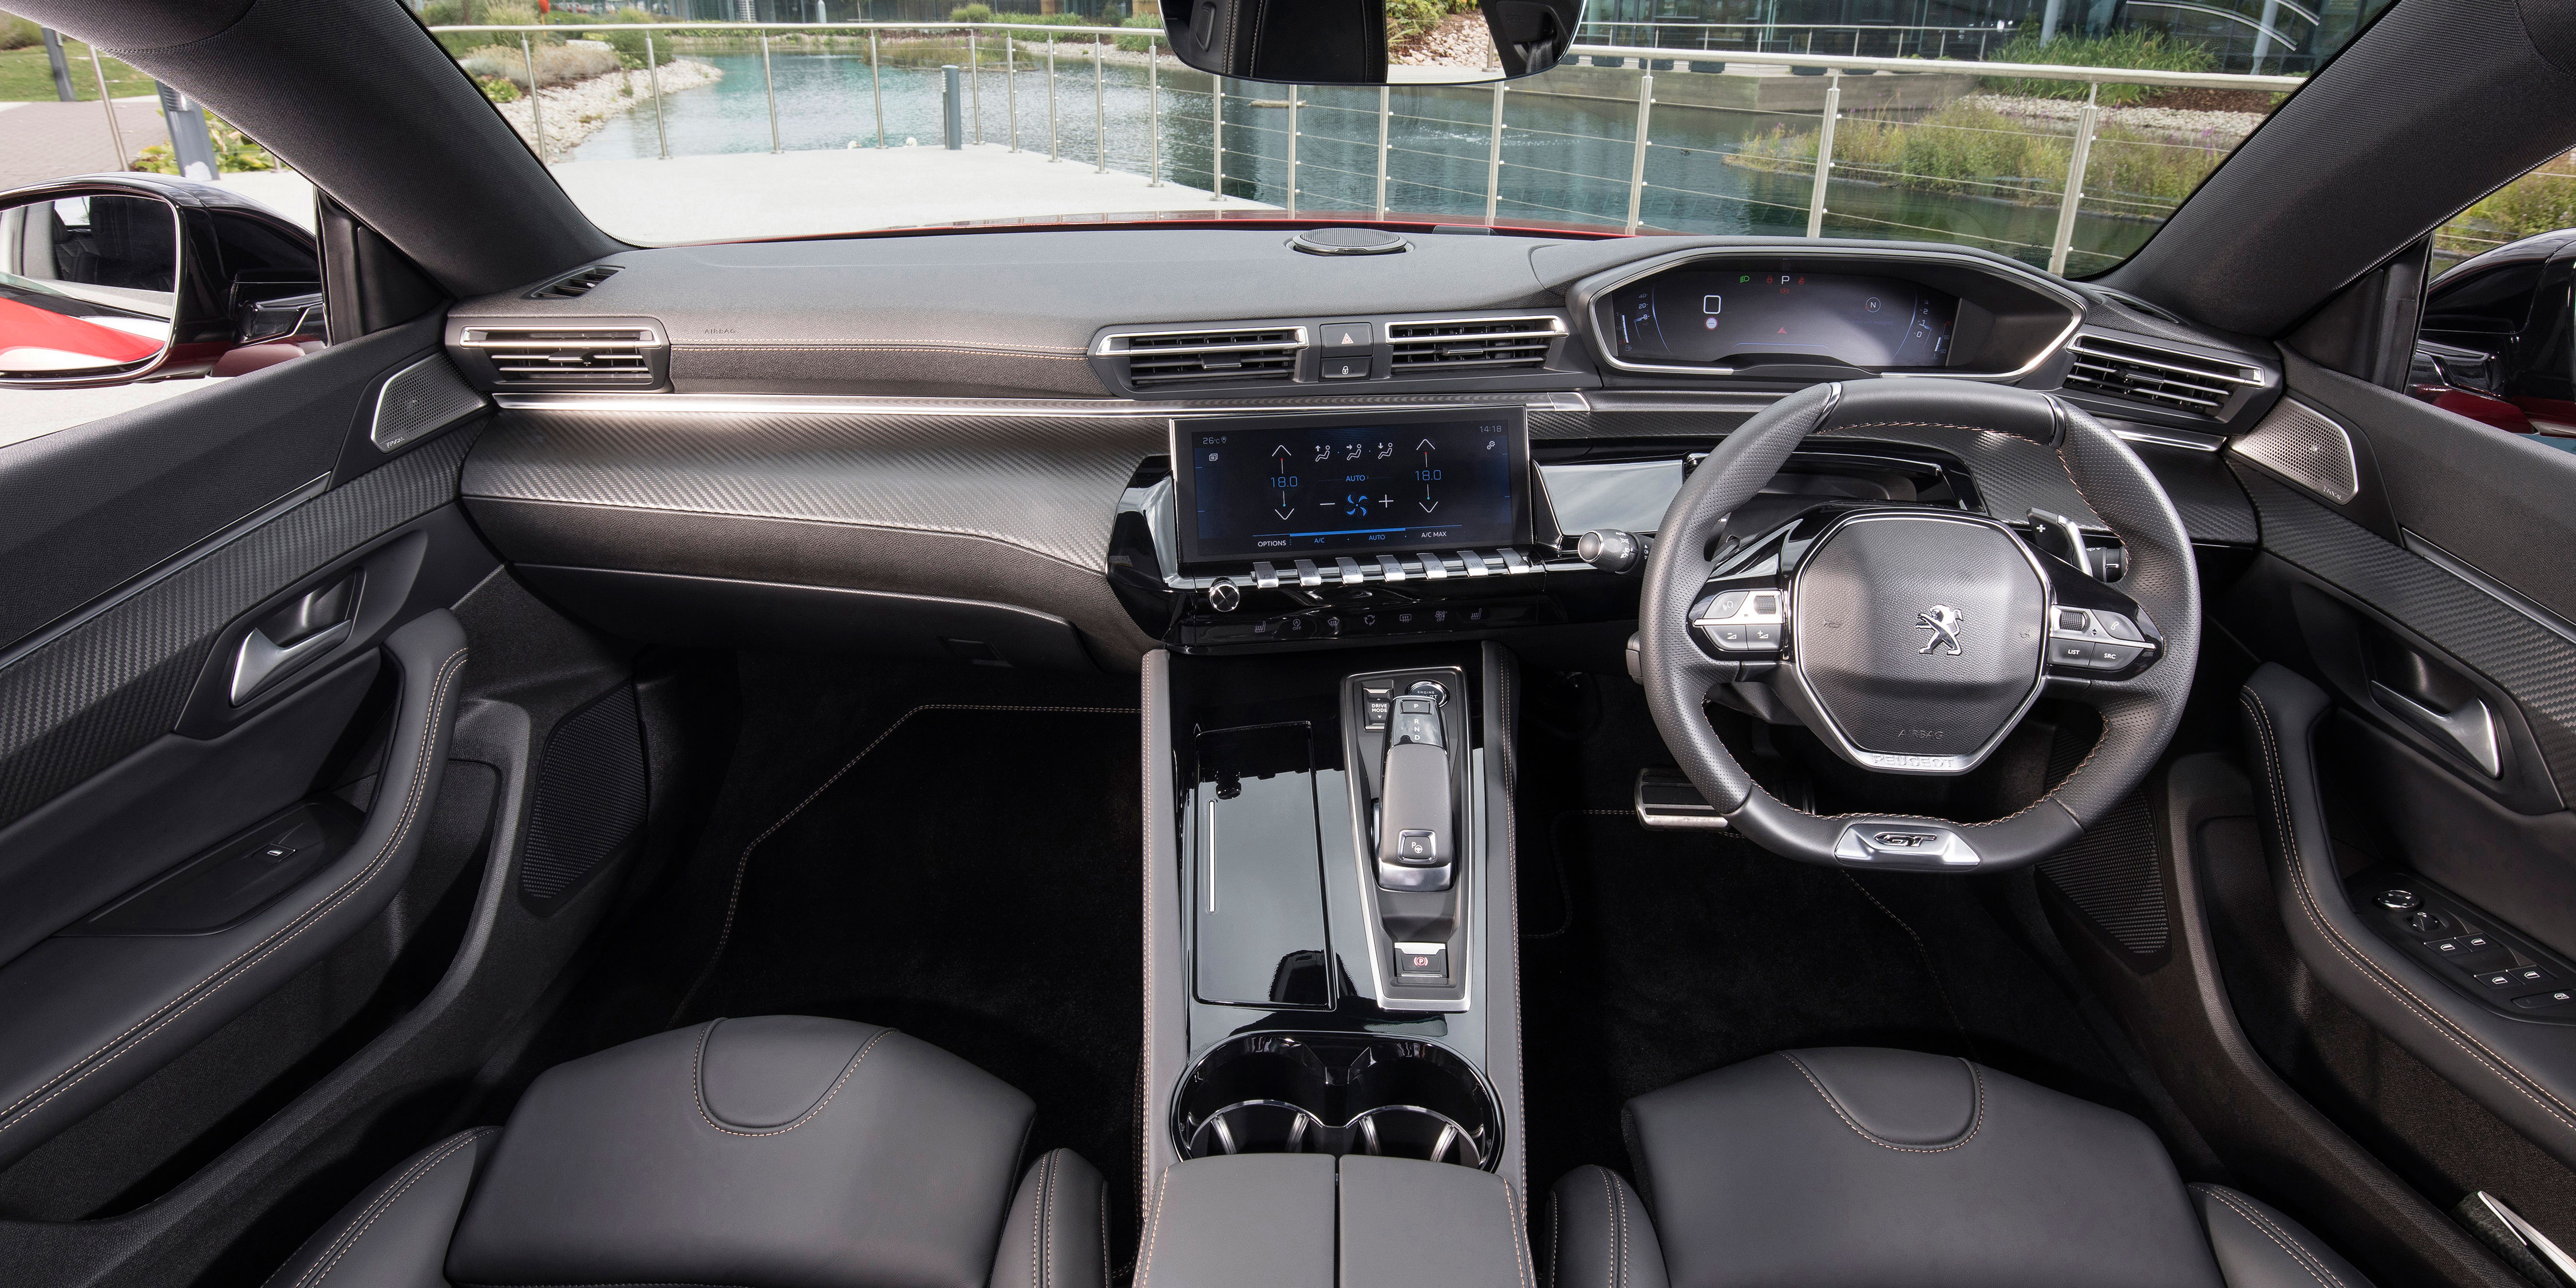 Peugeot 508 Interior Infotainment Carwow